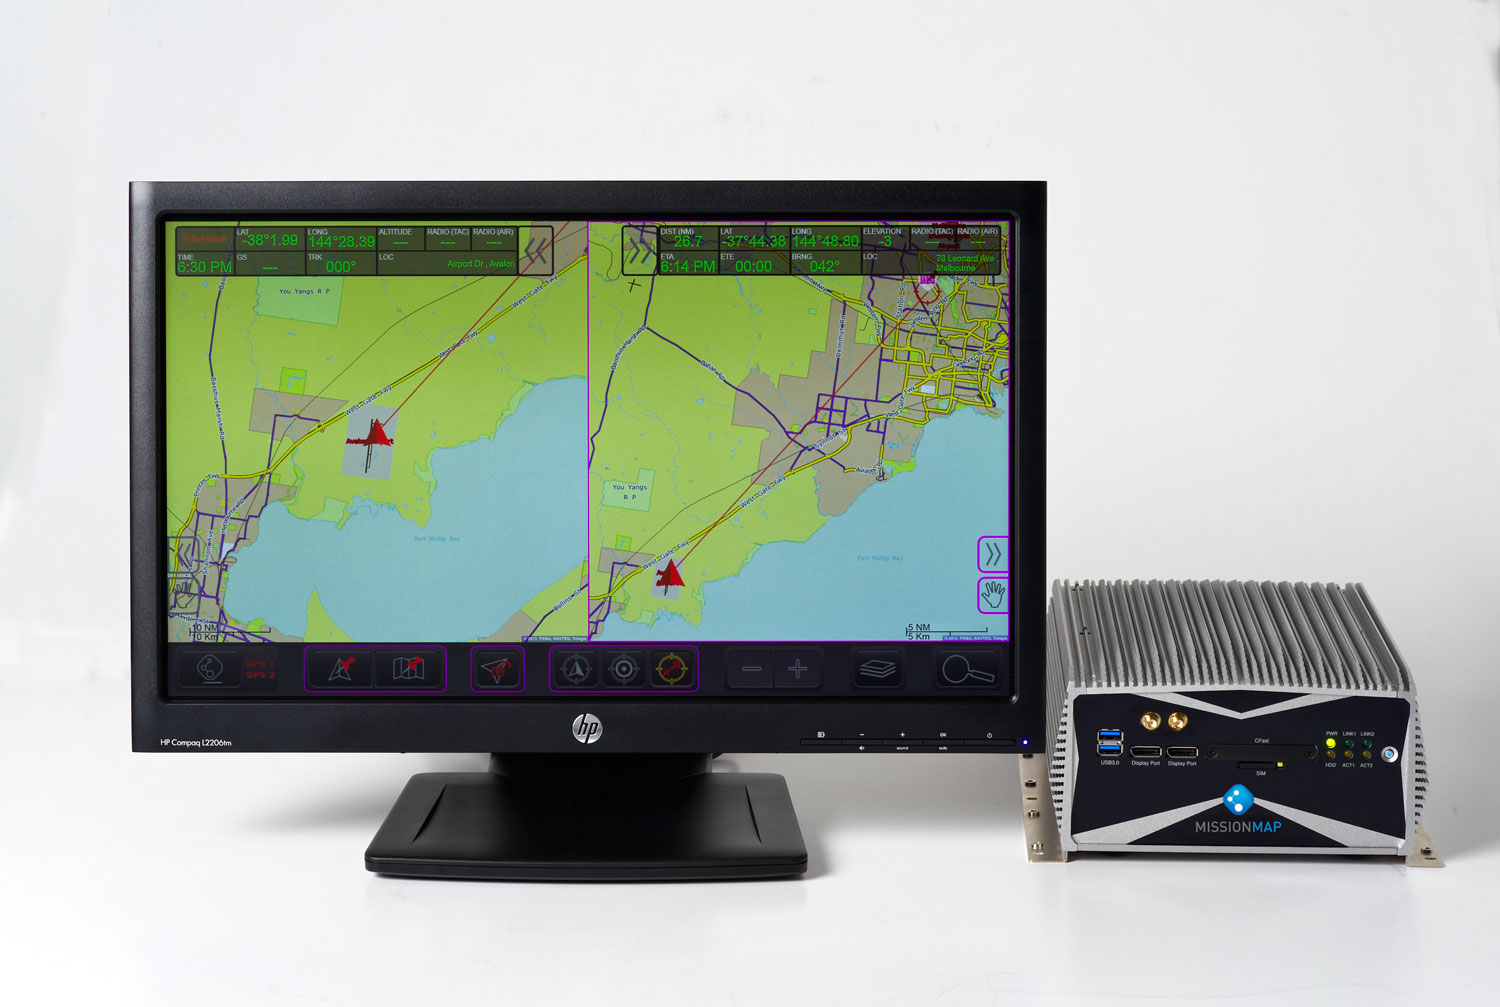 MISSIONMAP Computer & Touchscreen Monitor